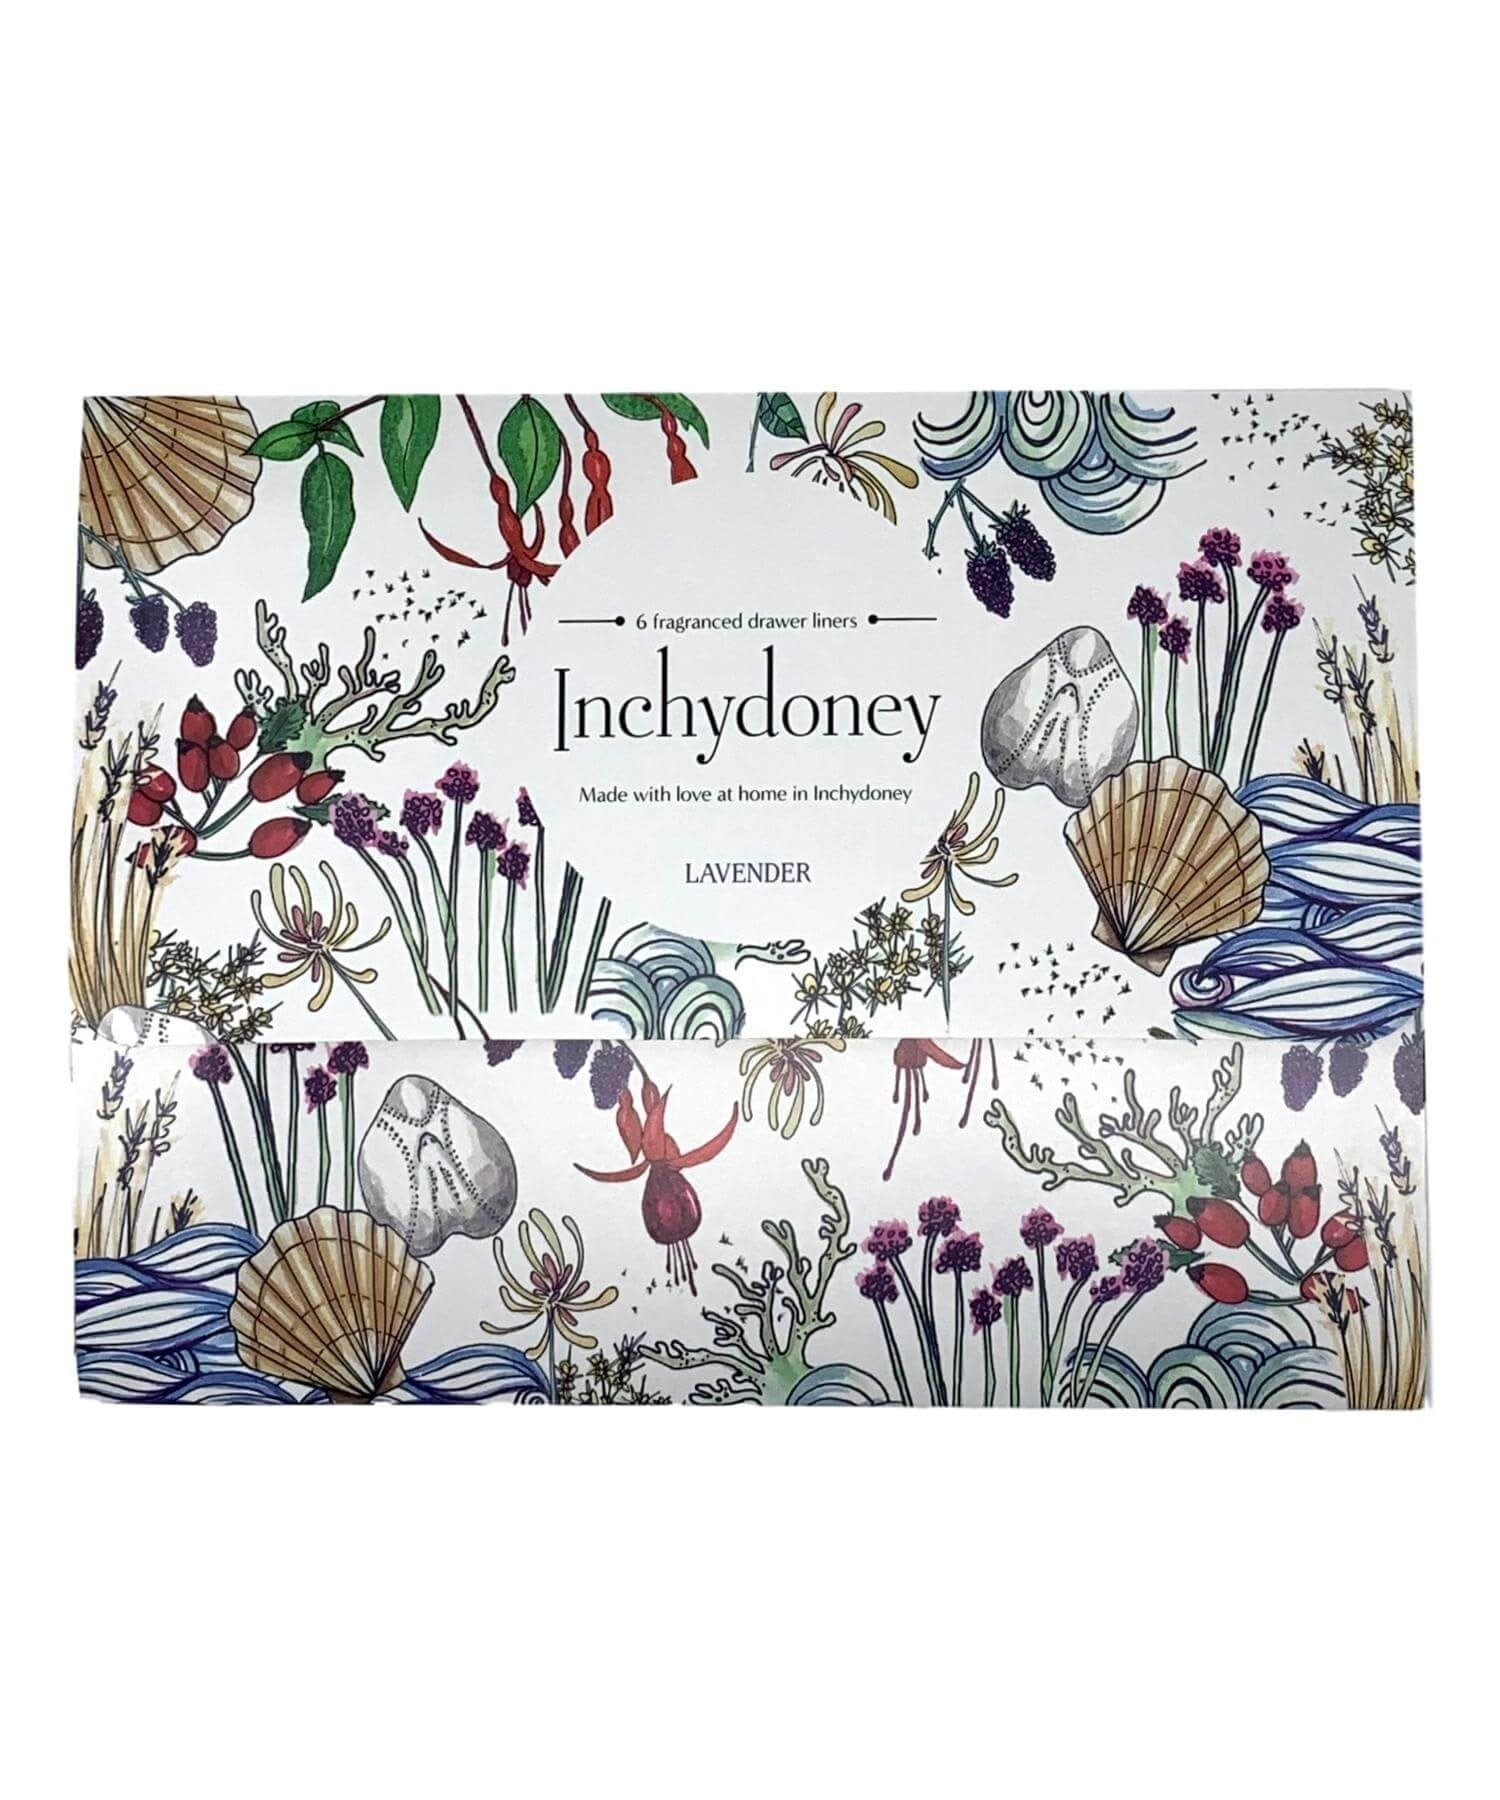 Scented Drawer Liners - Lavender - [Inchydoney Candles] - Home Fragrance - Irish Gifts